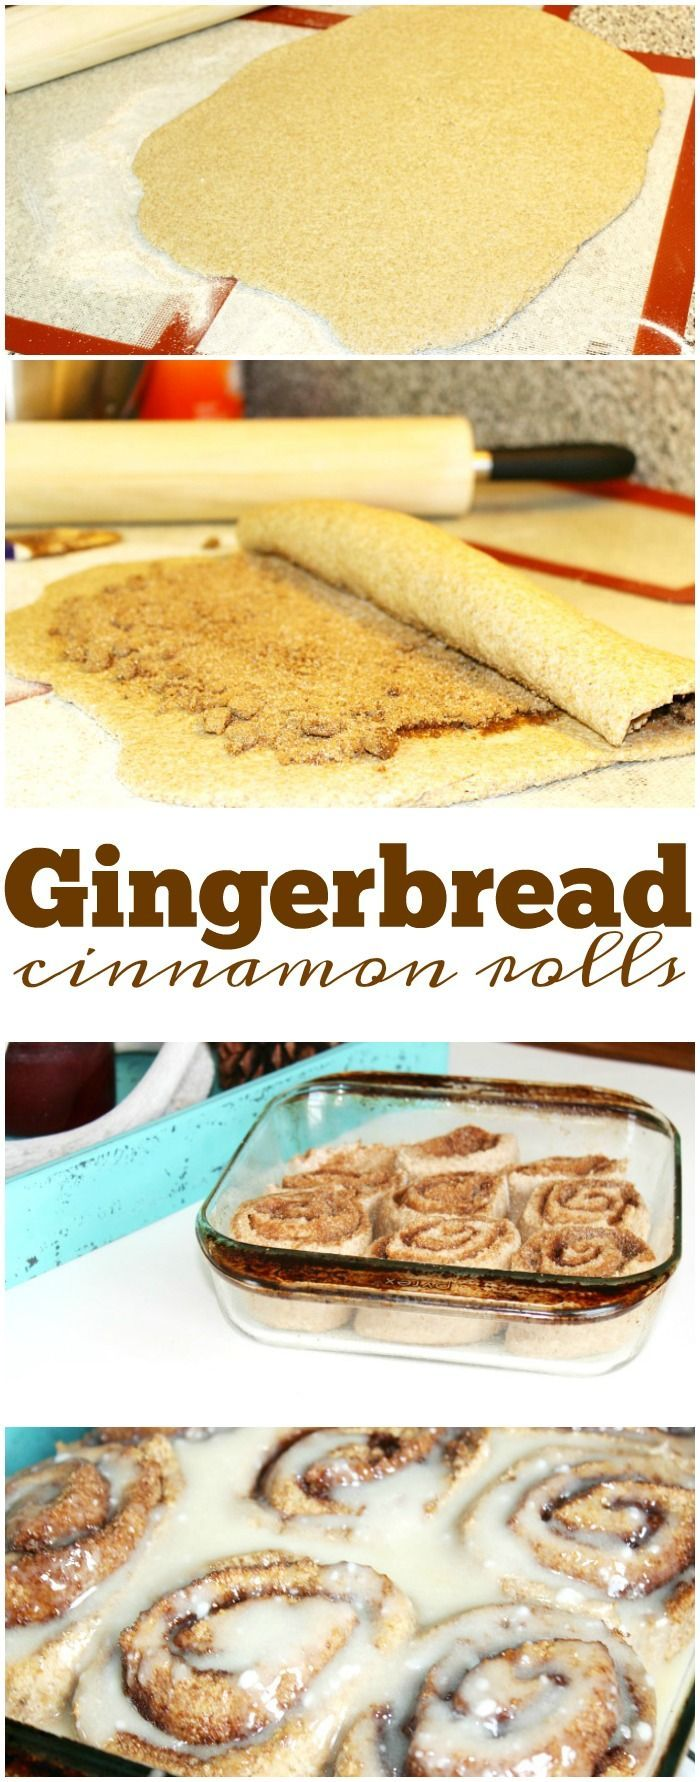 Gingerbread cinnamon rolls are amazing on Christmas morning! There's nothing like homemade cinnamon rolls and adding gingerbread is so tasty. via @thetypicalmom